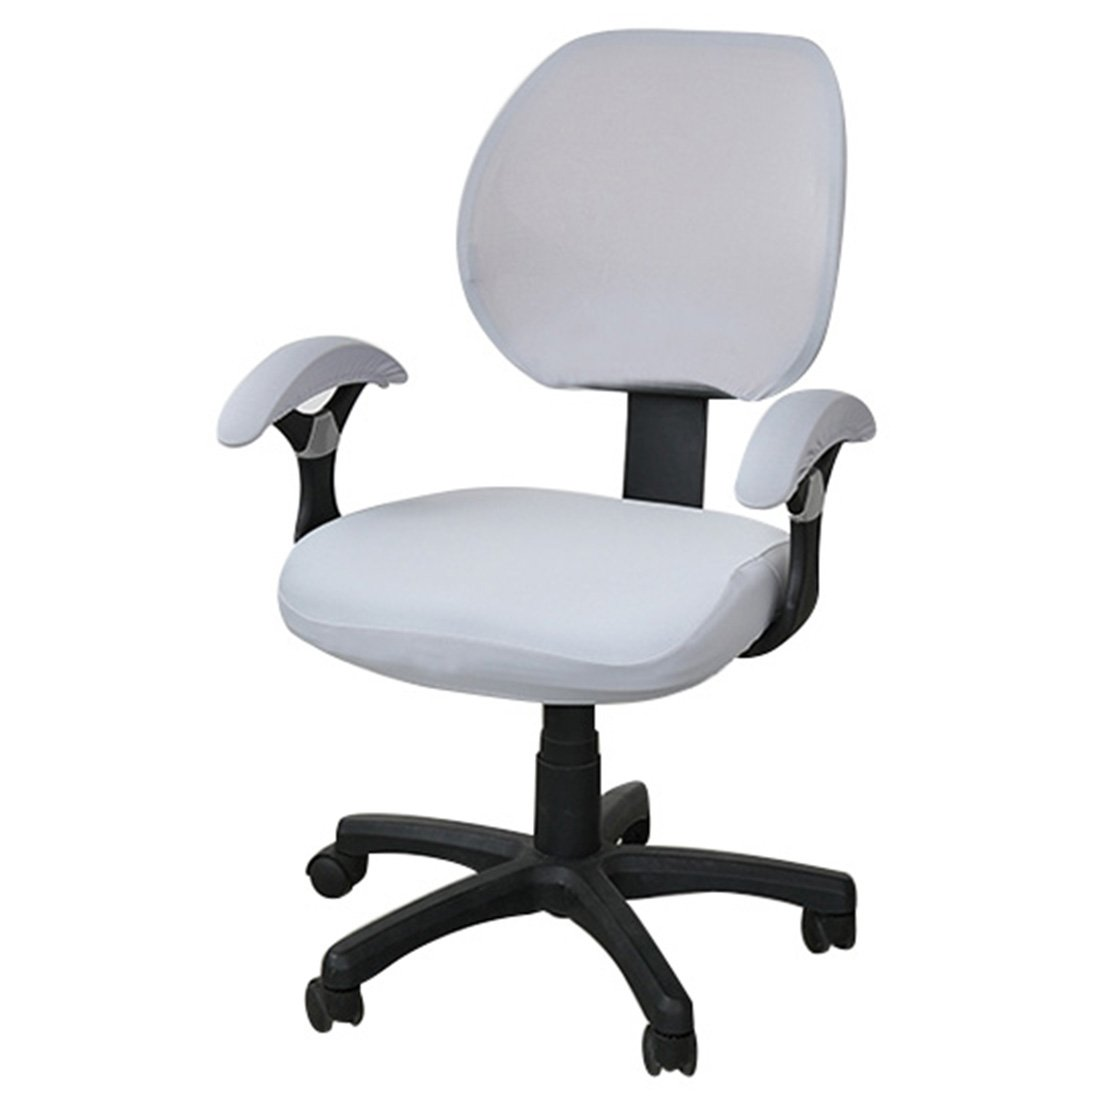 Freahap Chair Cover Stretch Spandex Washable Removable for Office Home Desk Swivel Chair Protector Silver Grey